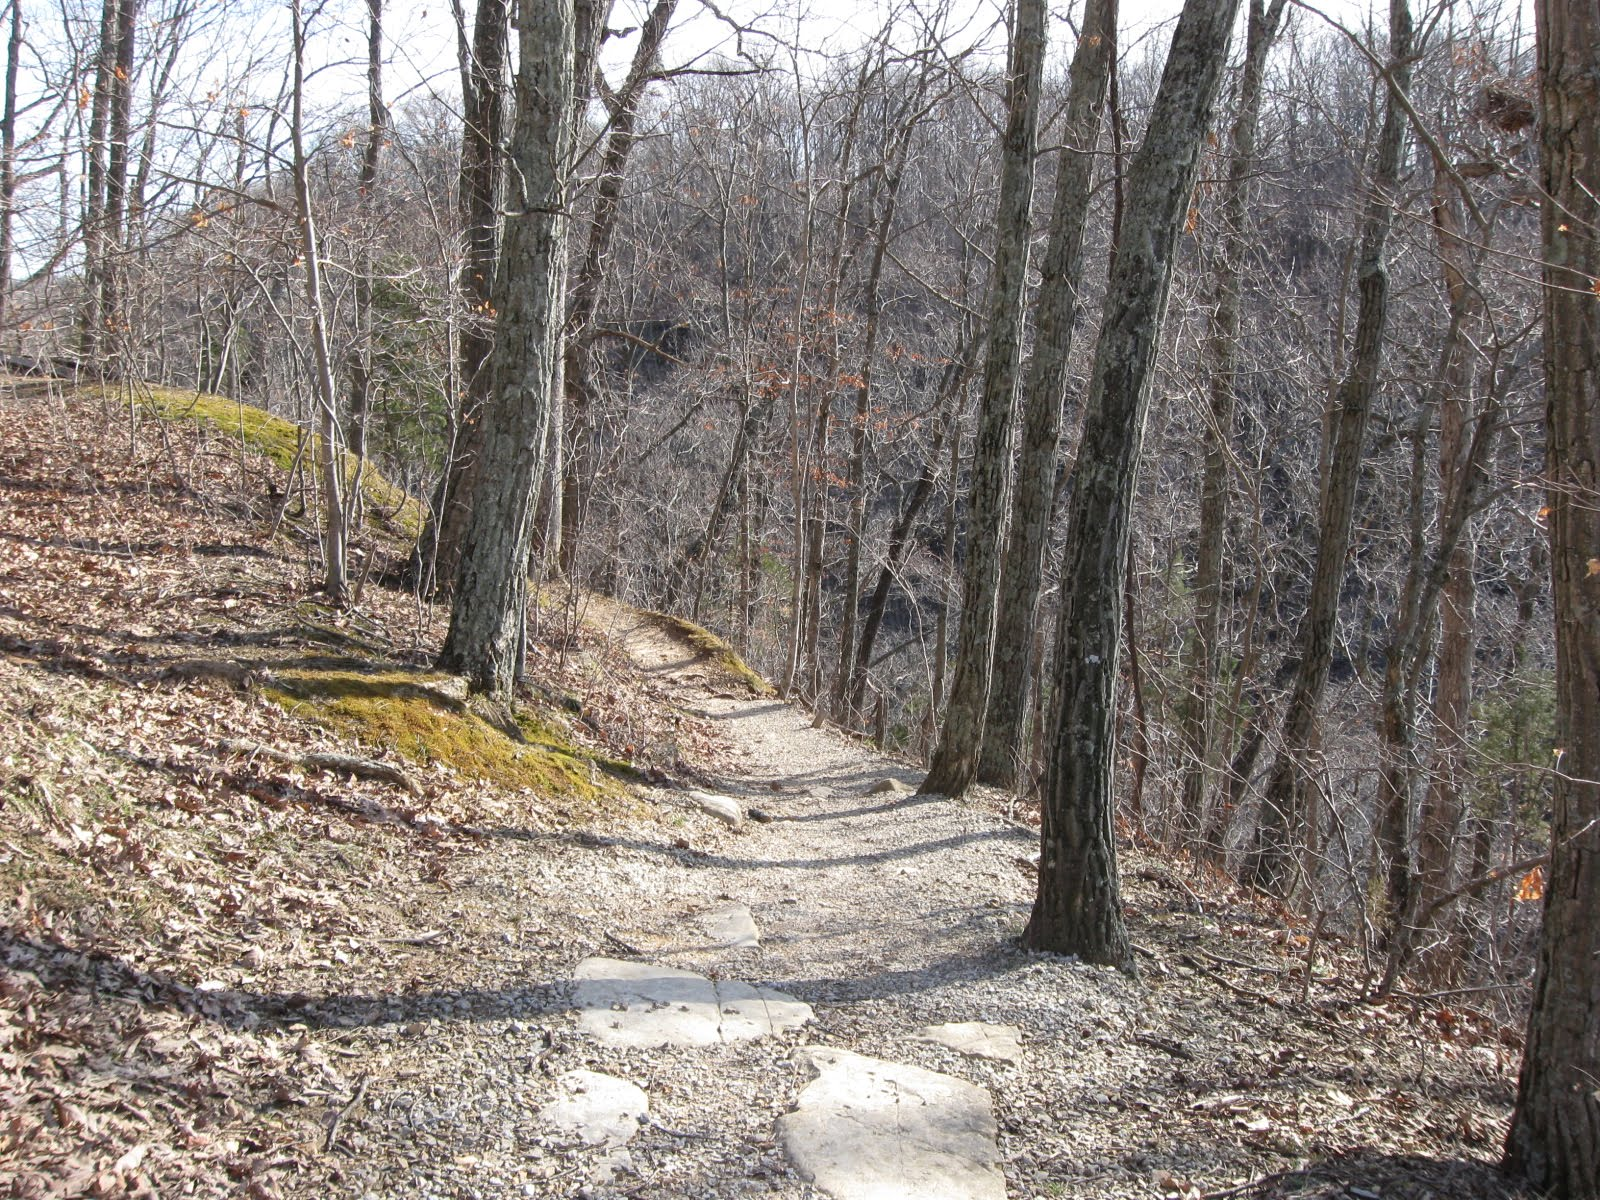 Clifty falls state park part 1